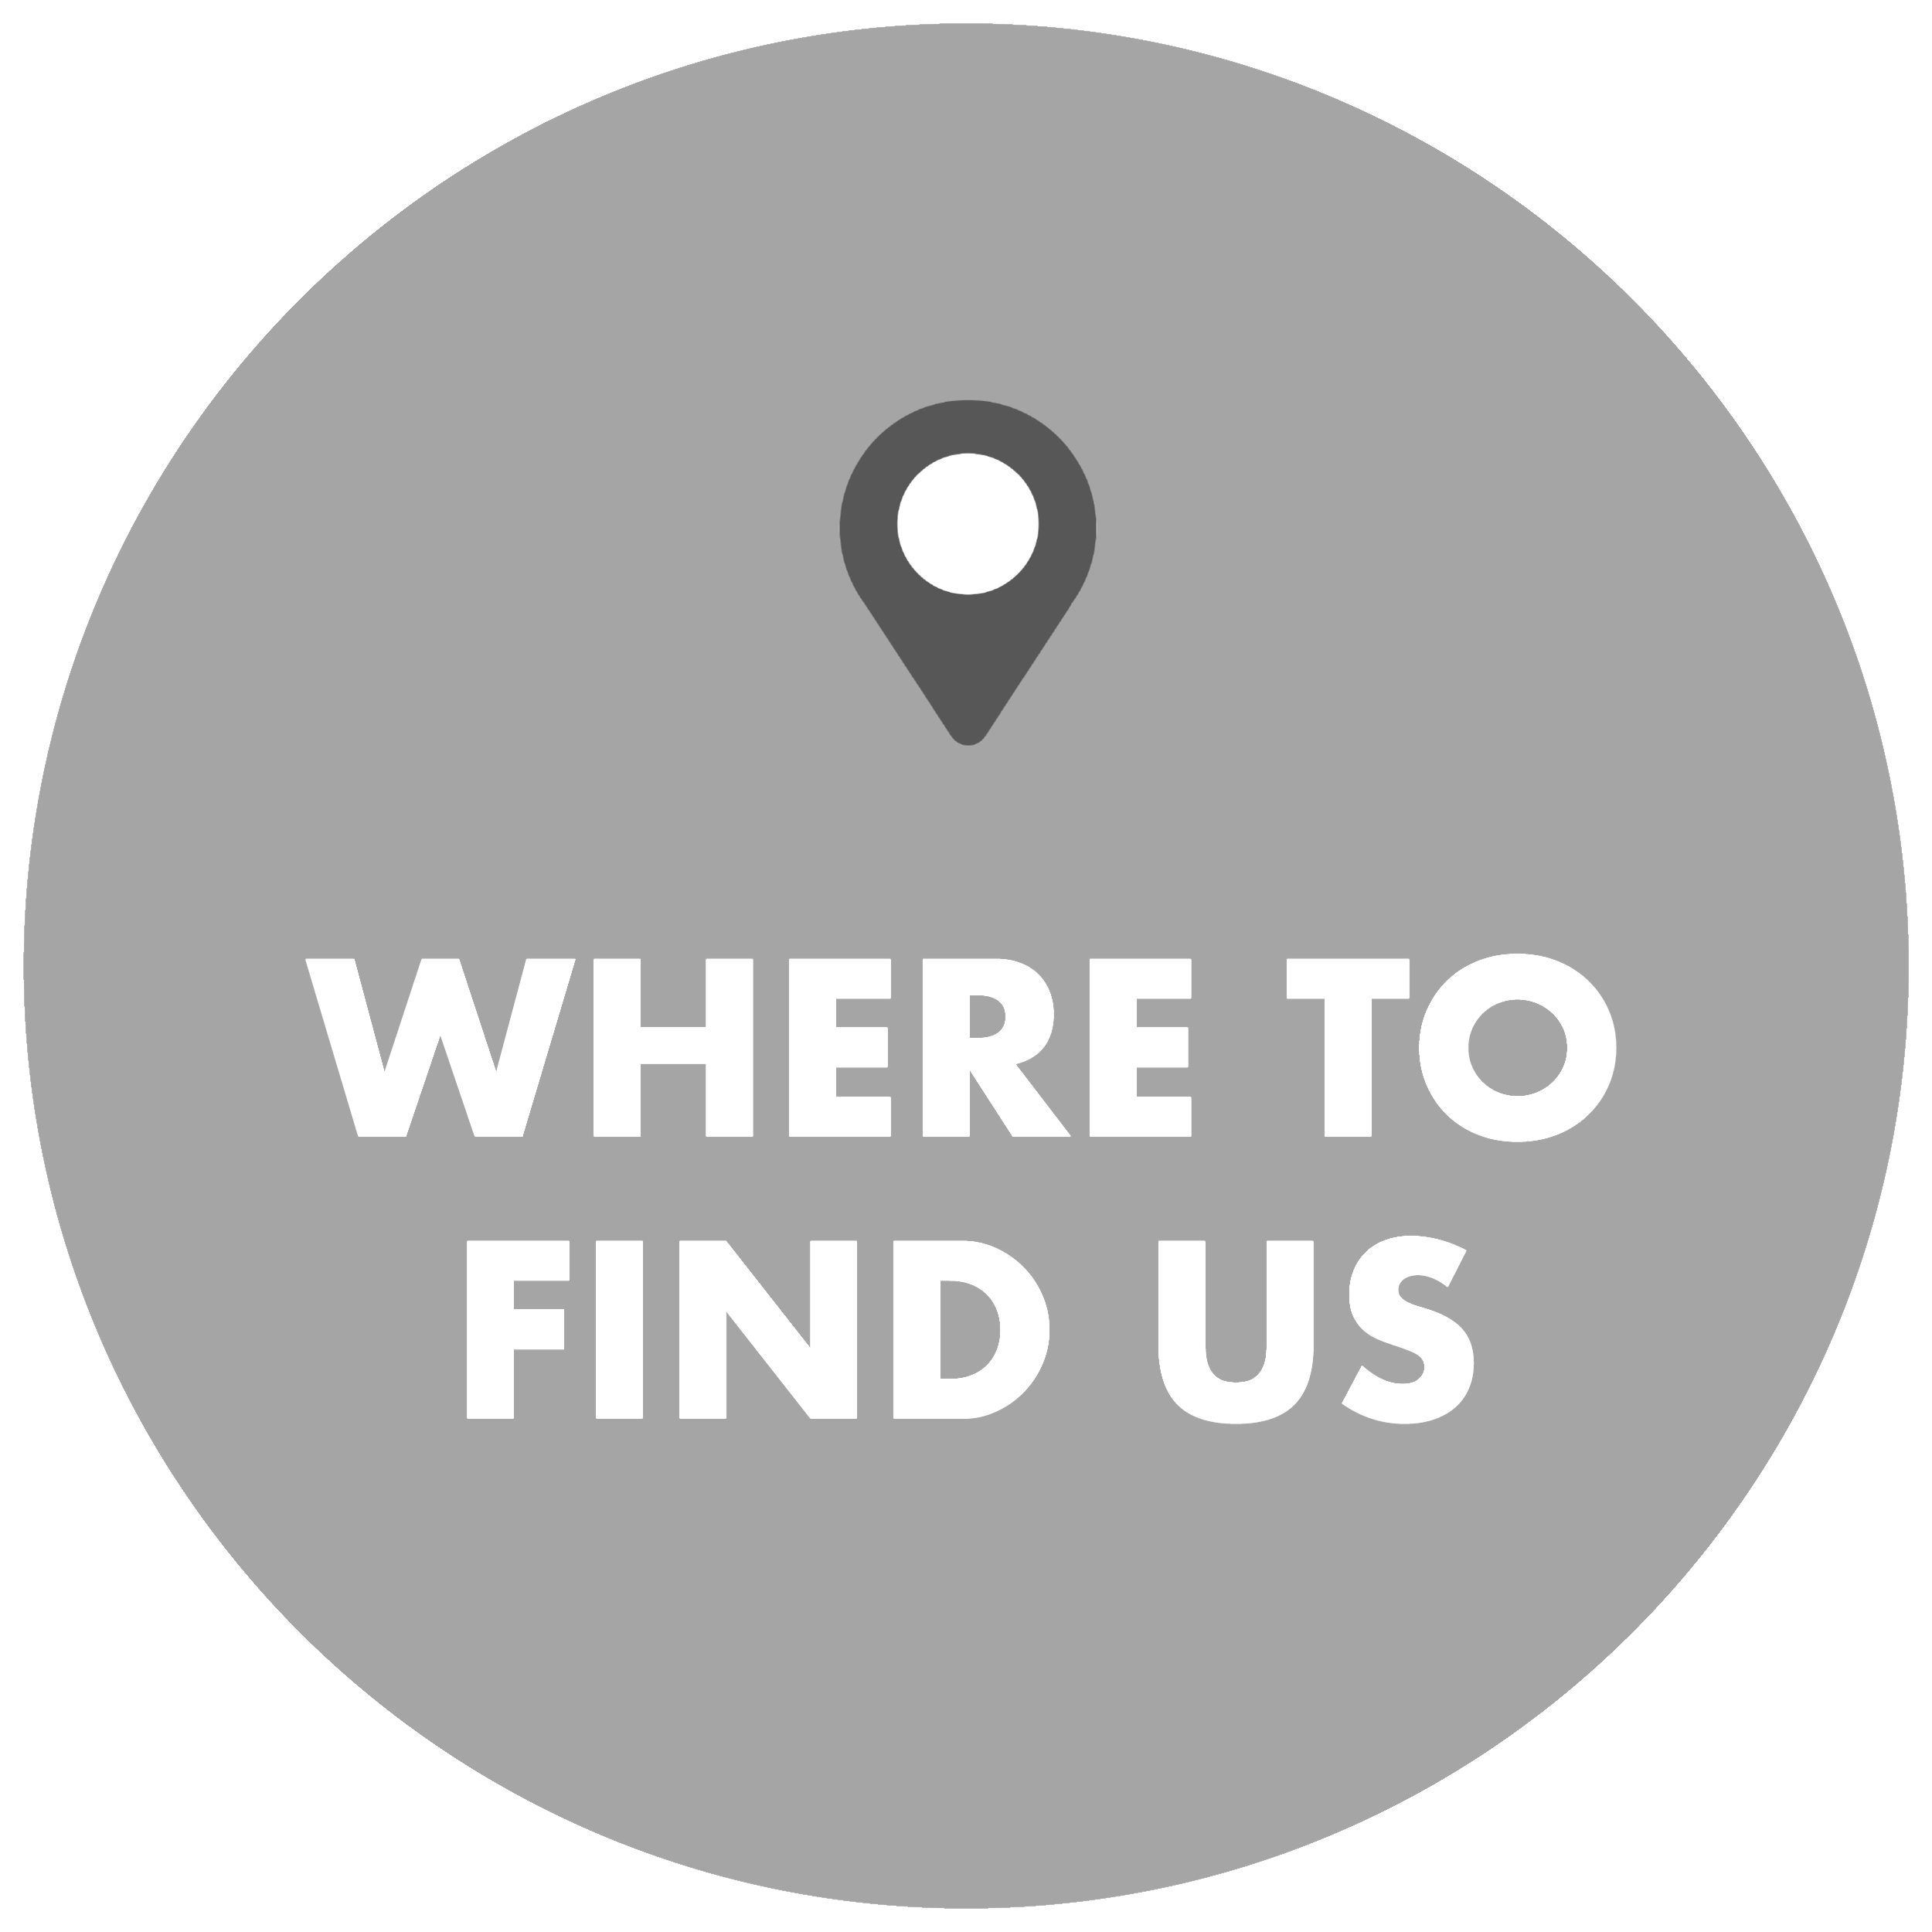 Where to find us-01.png